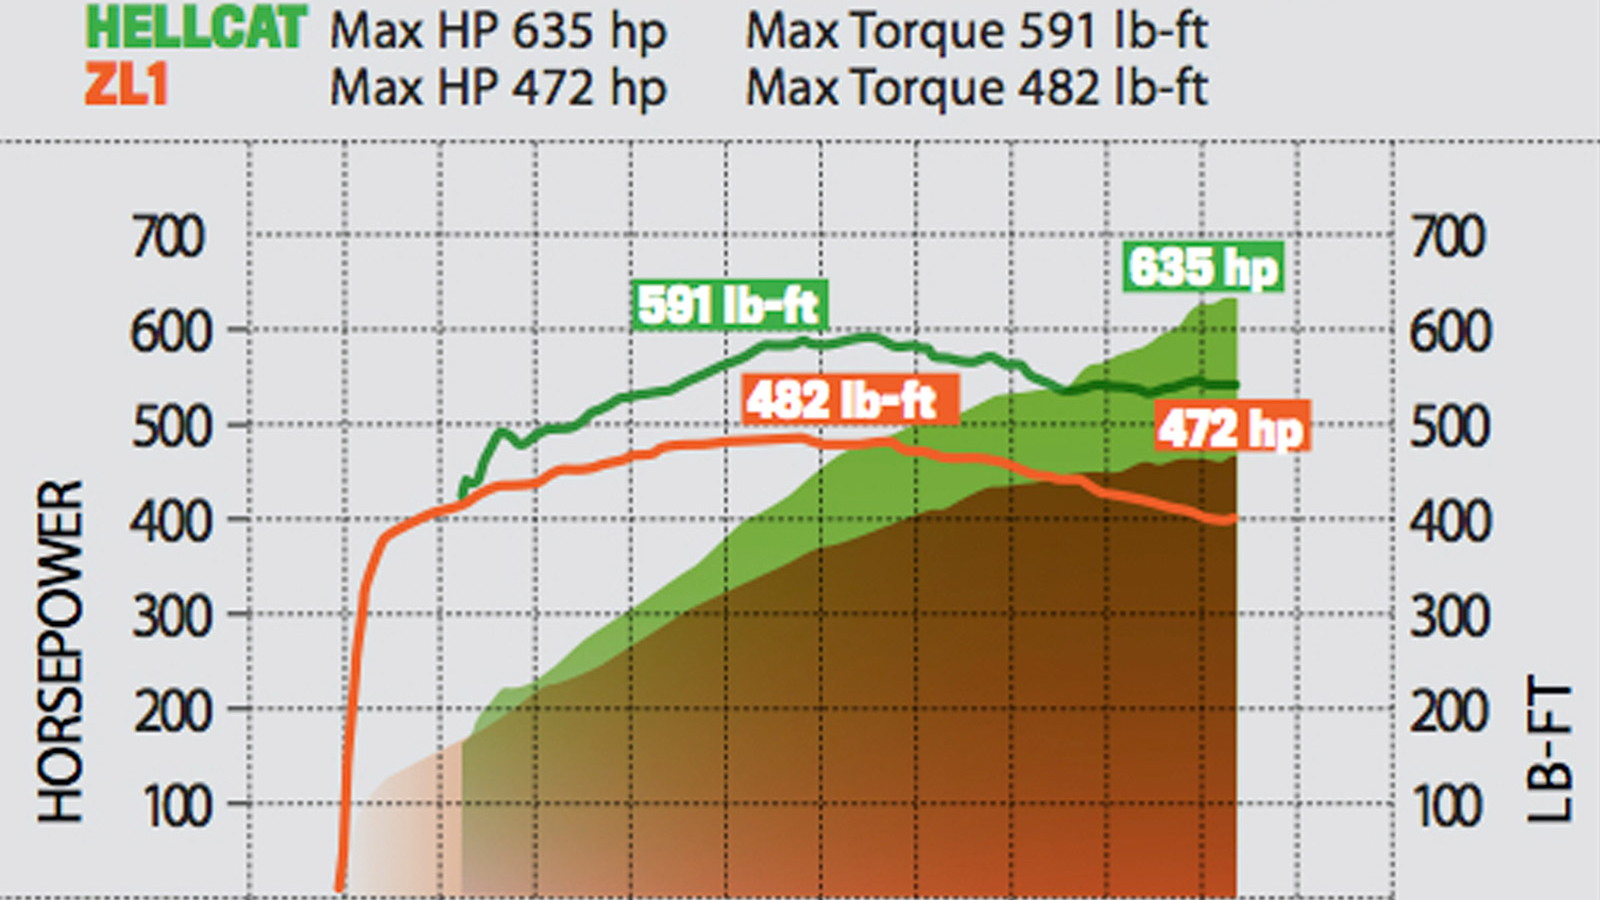 Dyno chart for 2015 Challenger SRT Hellcat and 2014 Camaro ZL1 (Image via Motor Trend)